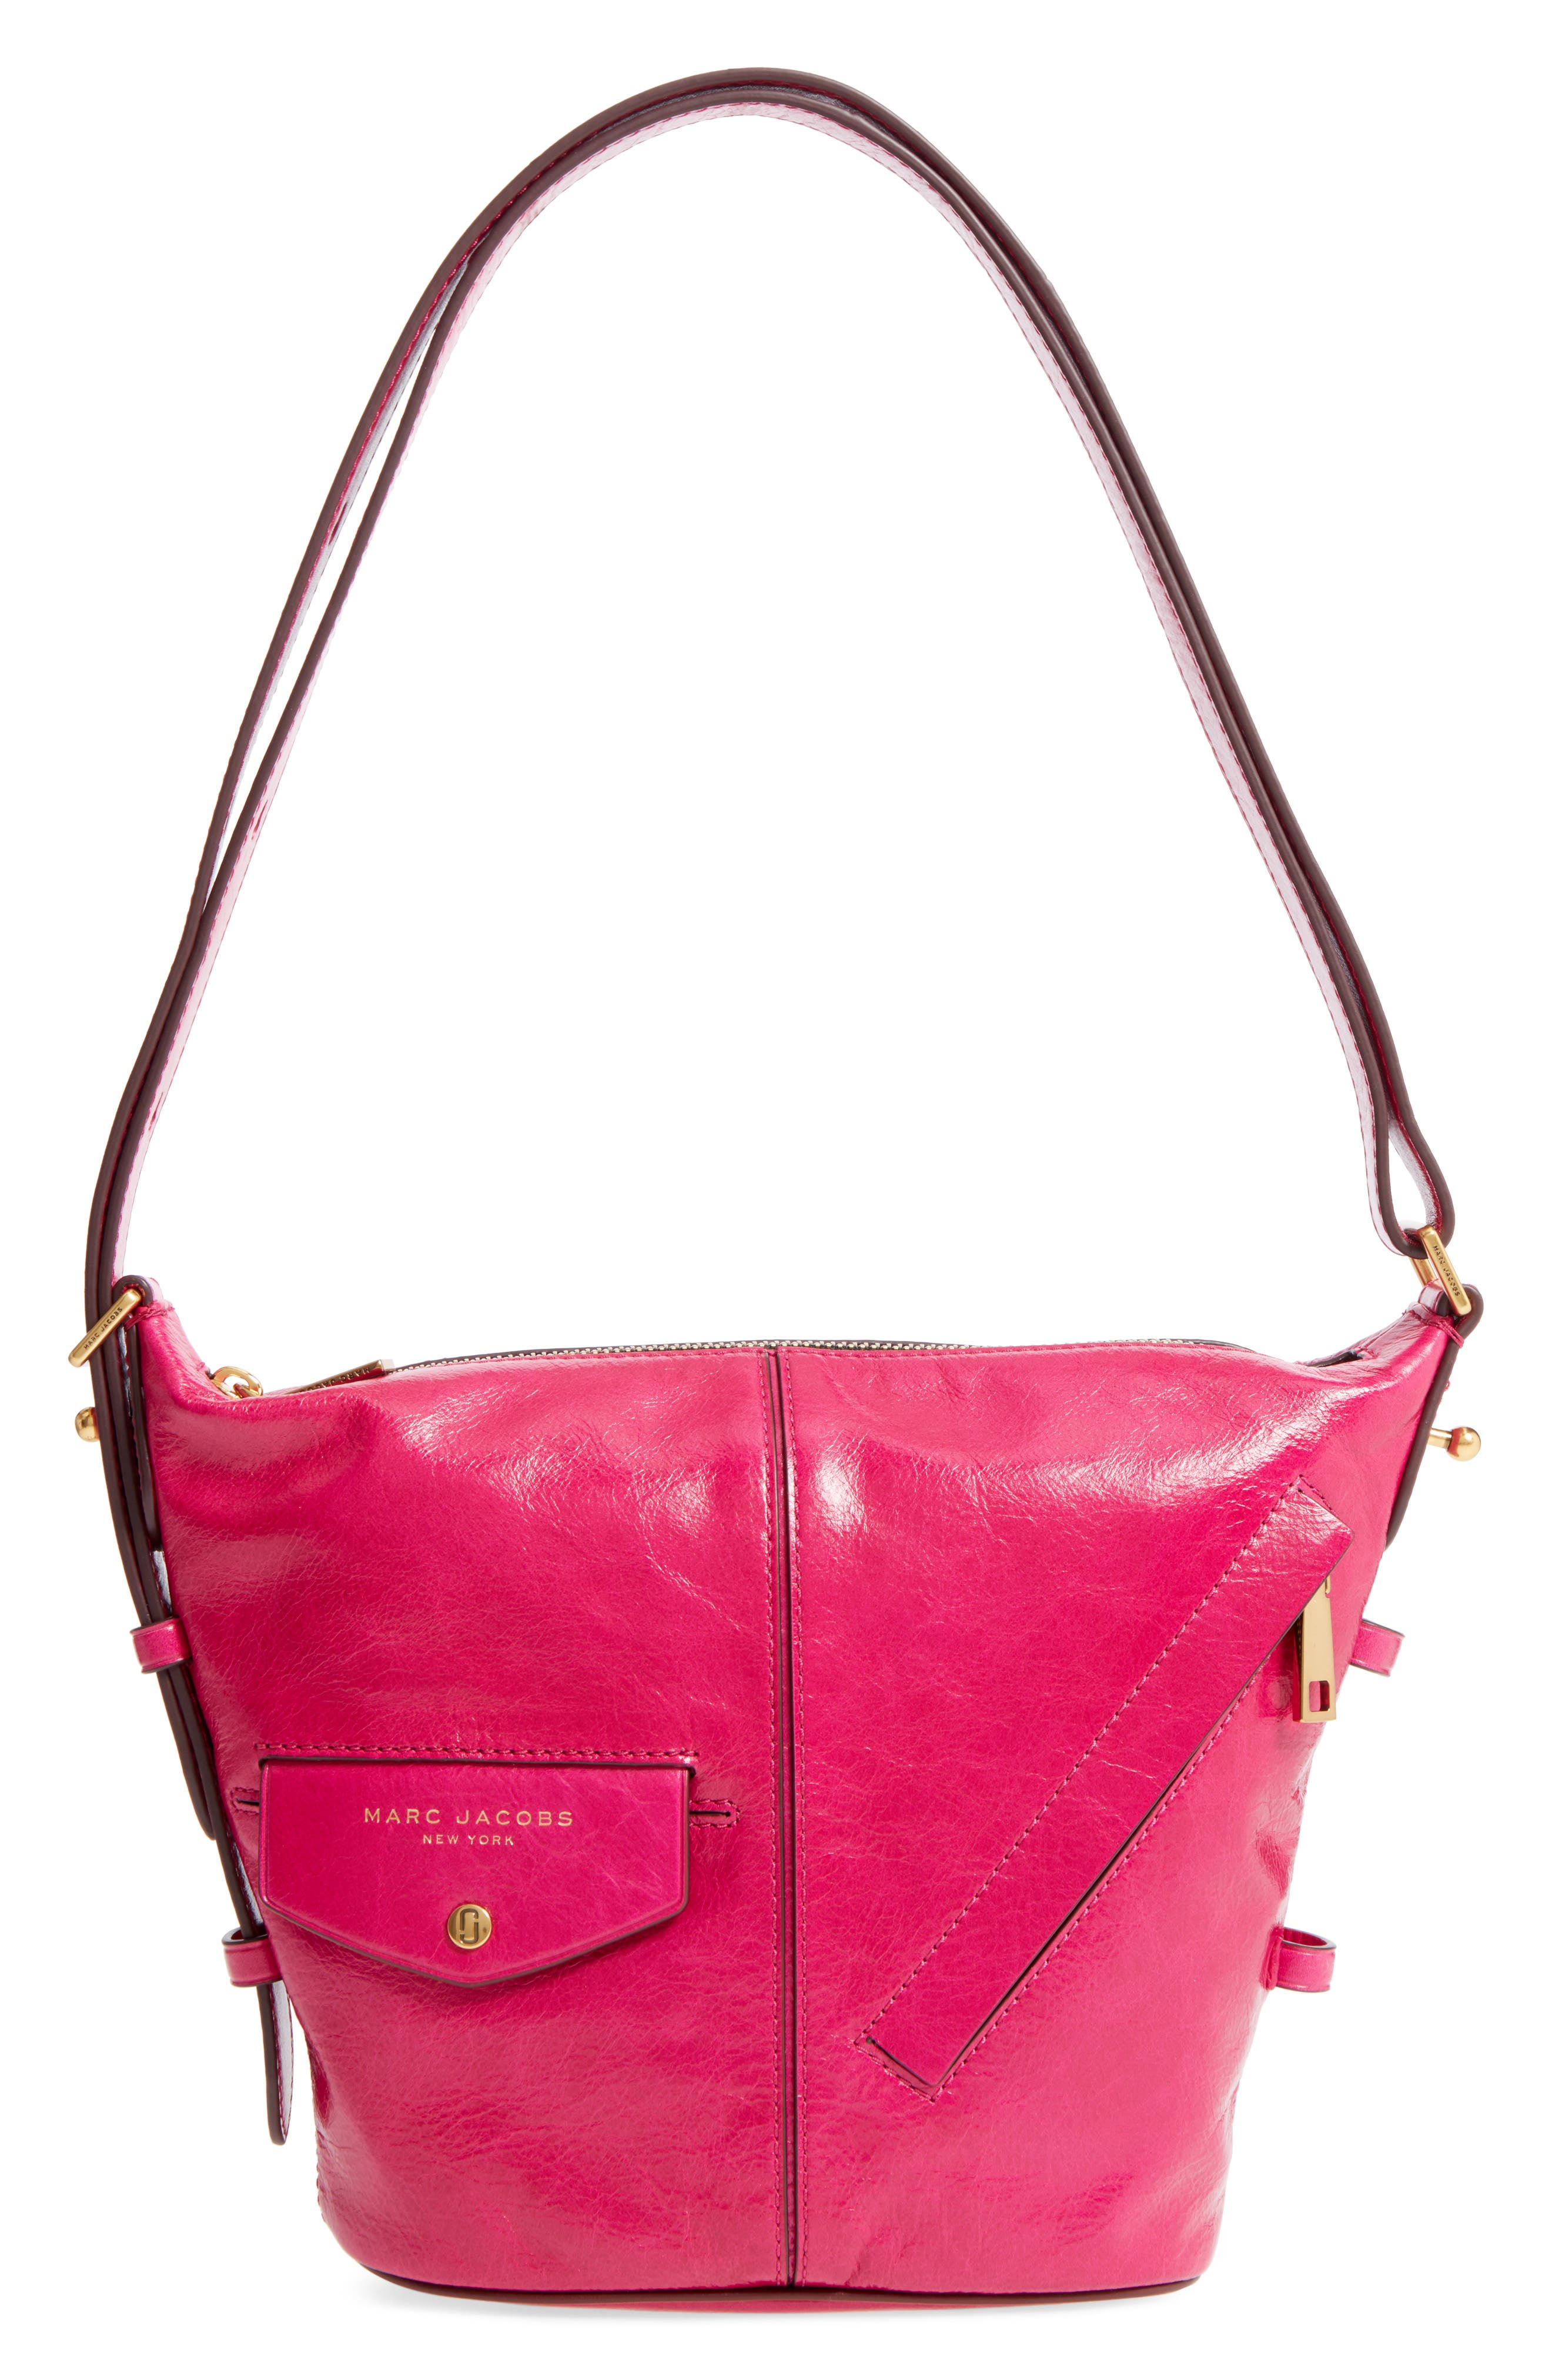 Alternate Image 1 Selected - MARC JACOBS The Vintage Mini Sling Convertible Leather Hobo